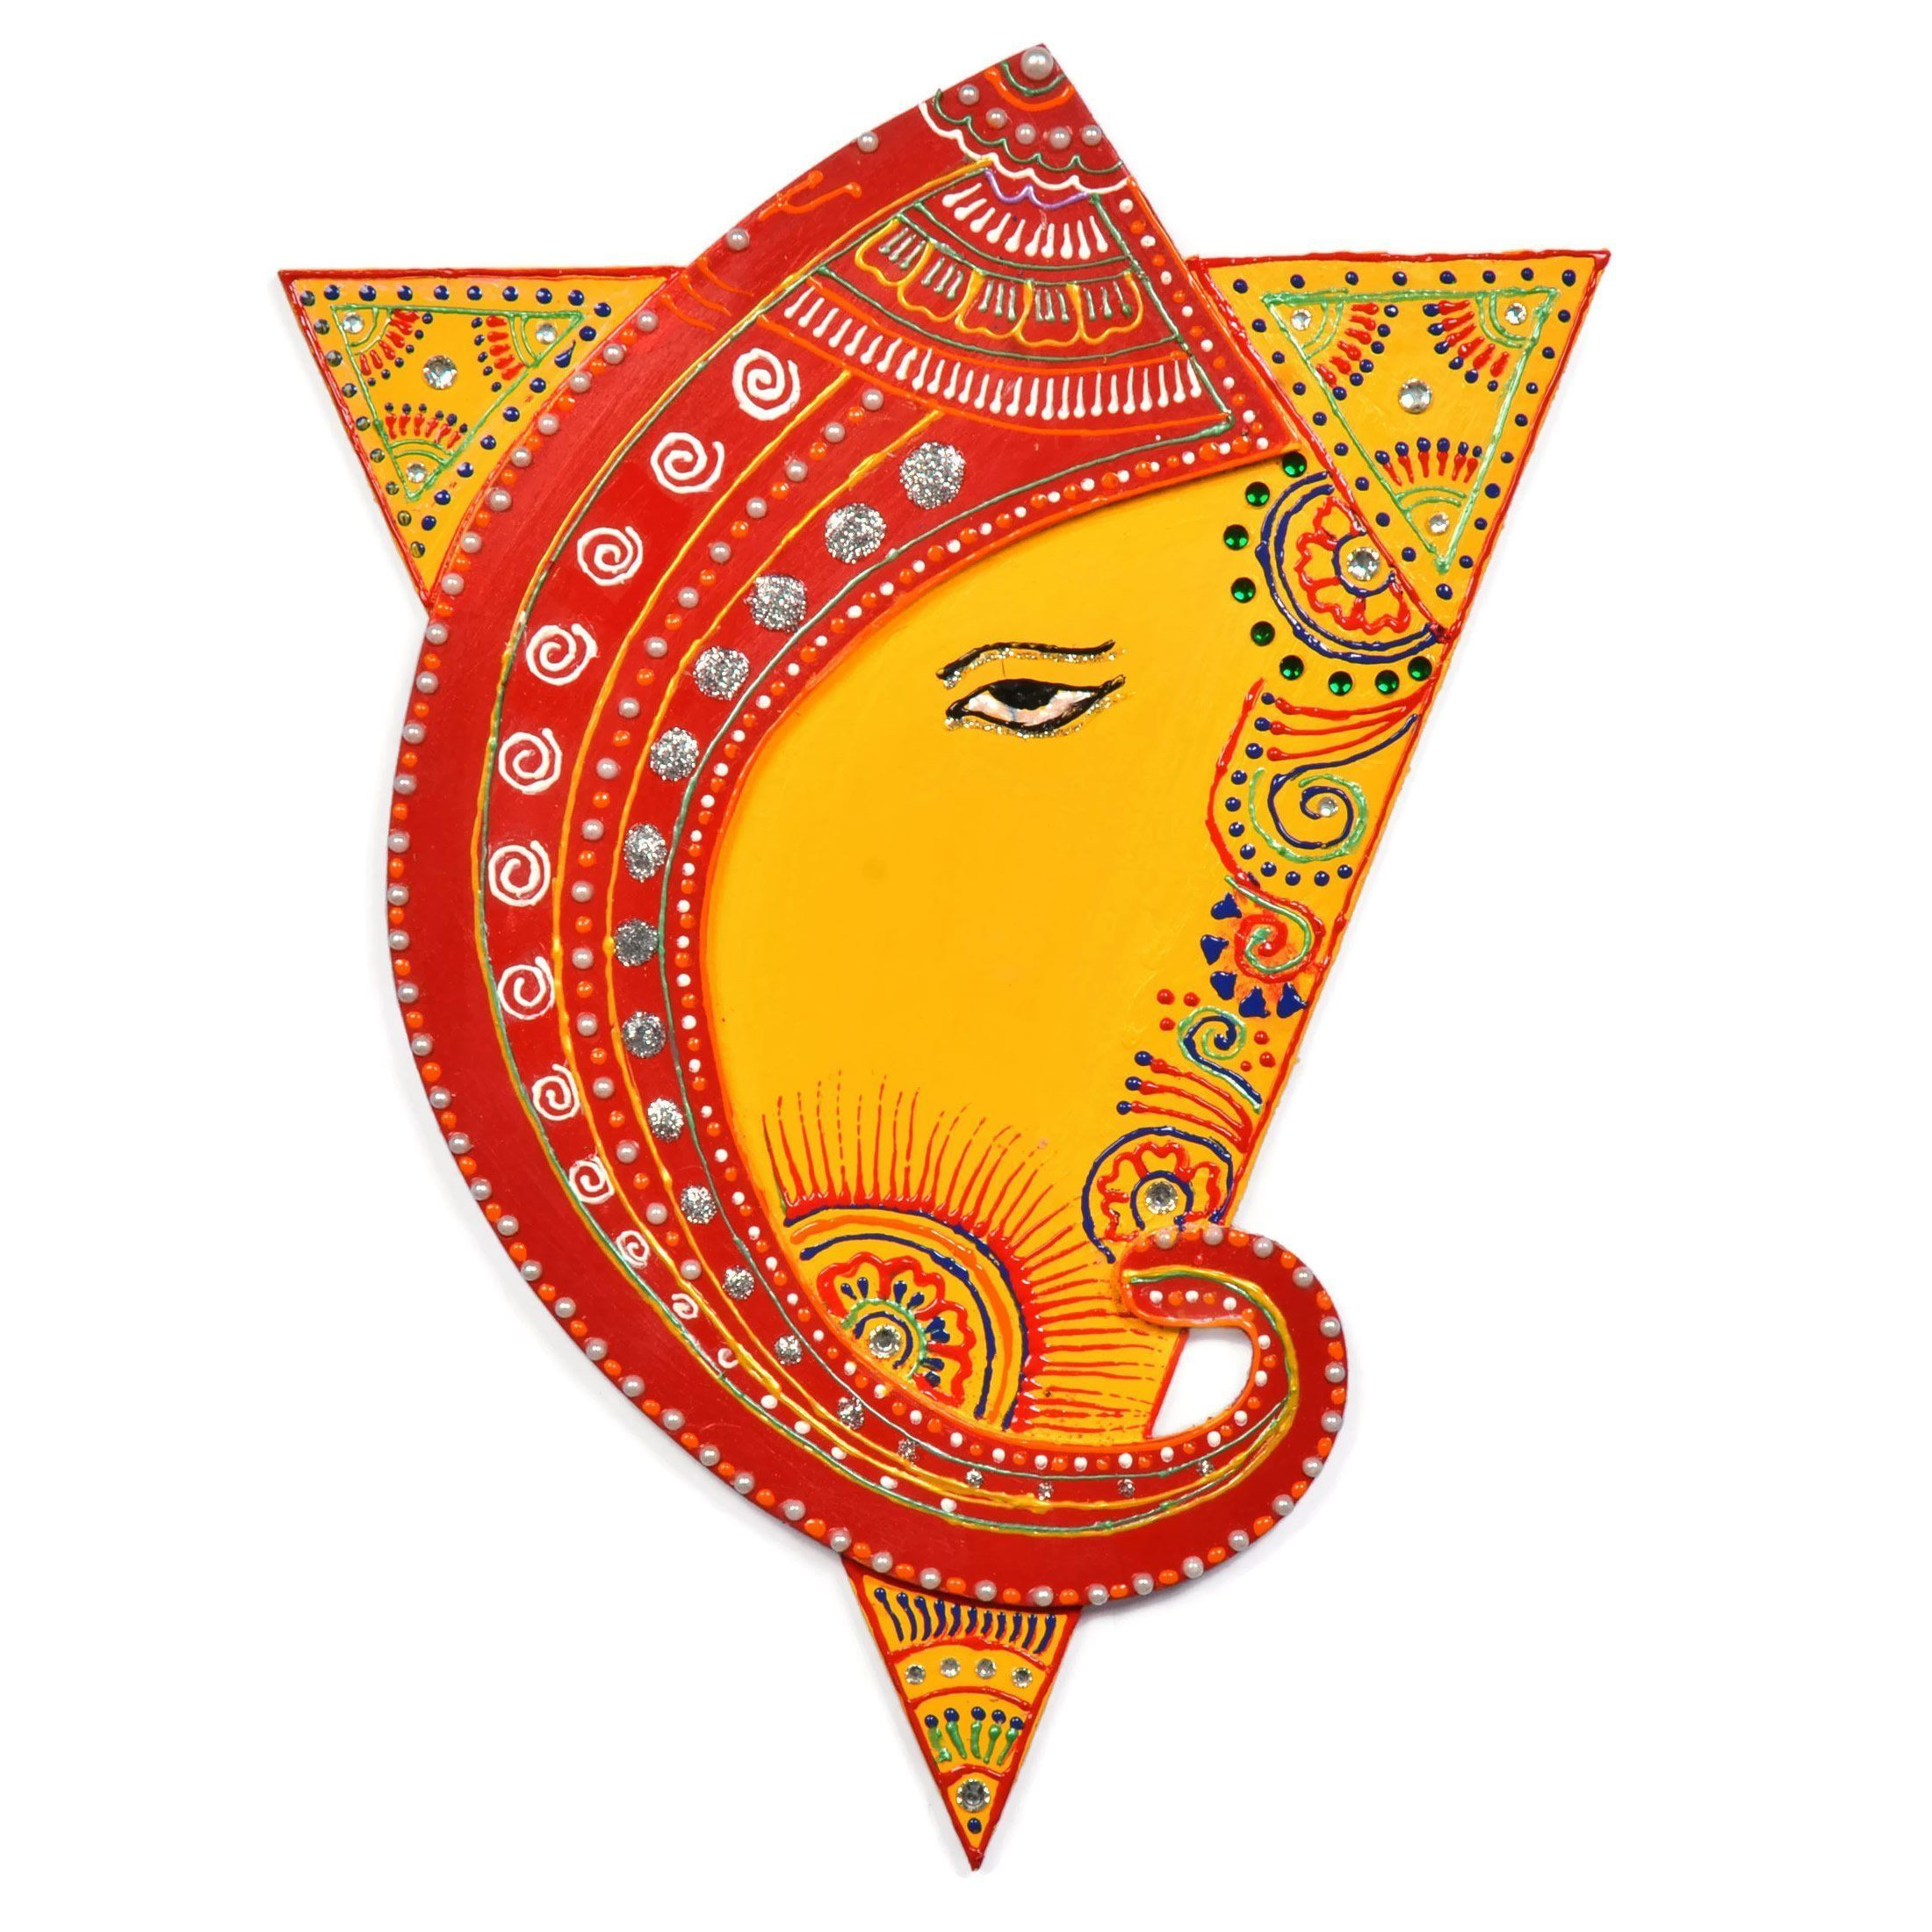 Shakti Triangle with Ganesh Wall Decor Painting - Yellow & Red Base ...